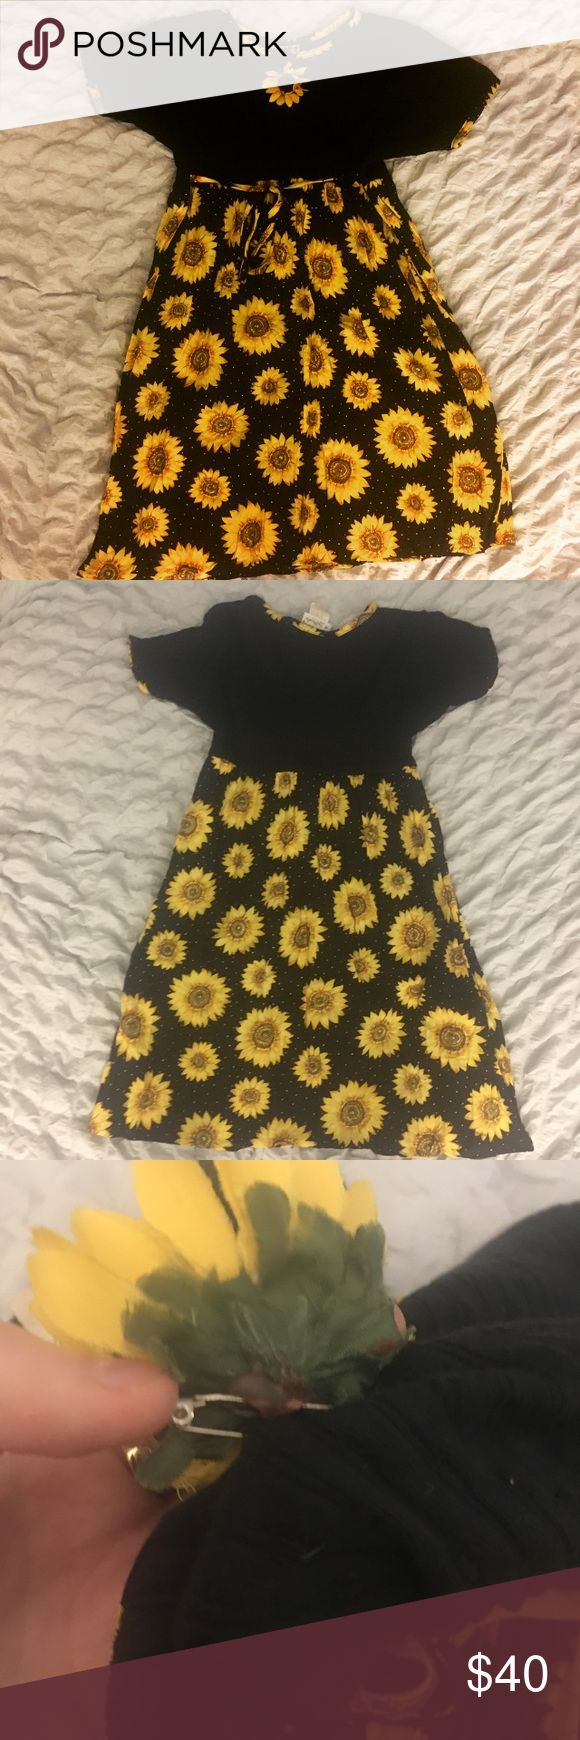 90s sunflower dress Channel your inner 90s goddess with this one-of-a-kind  sunflower baby doll dress. It even has a detachable flower! The tag reads size 18, but it's more of a xs/s size vintage Dresses